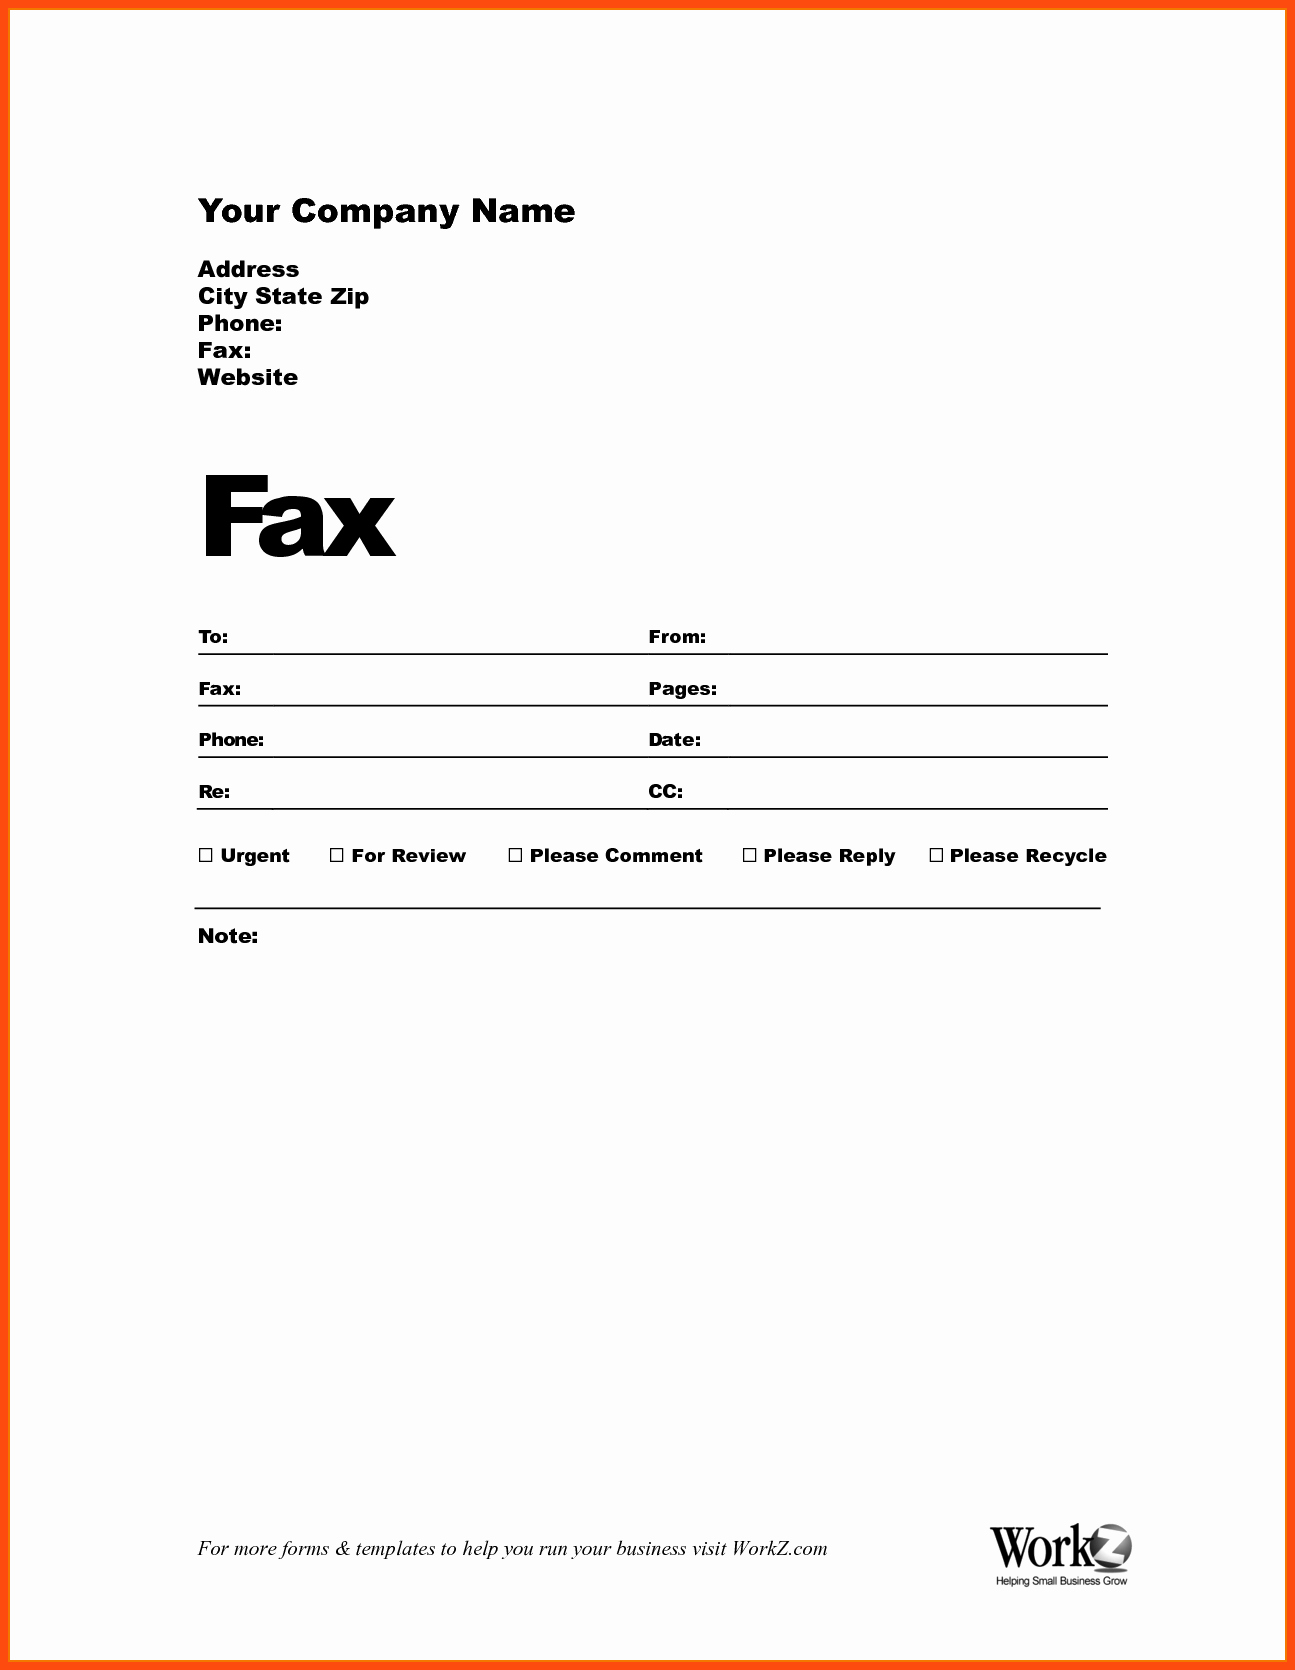 Free Fax Cover Page Template Luxury How to Fill Out A Fax Cover Sheet